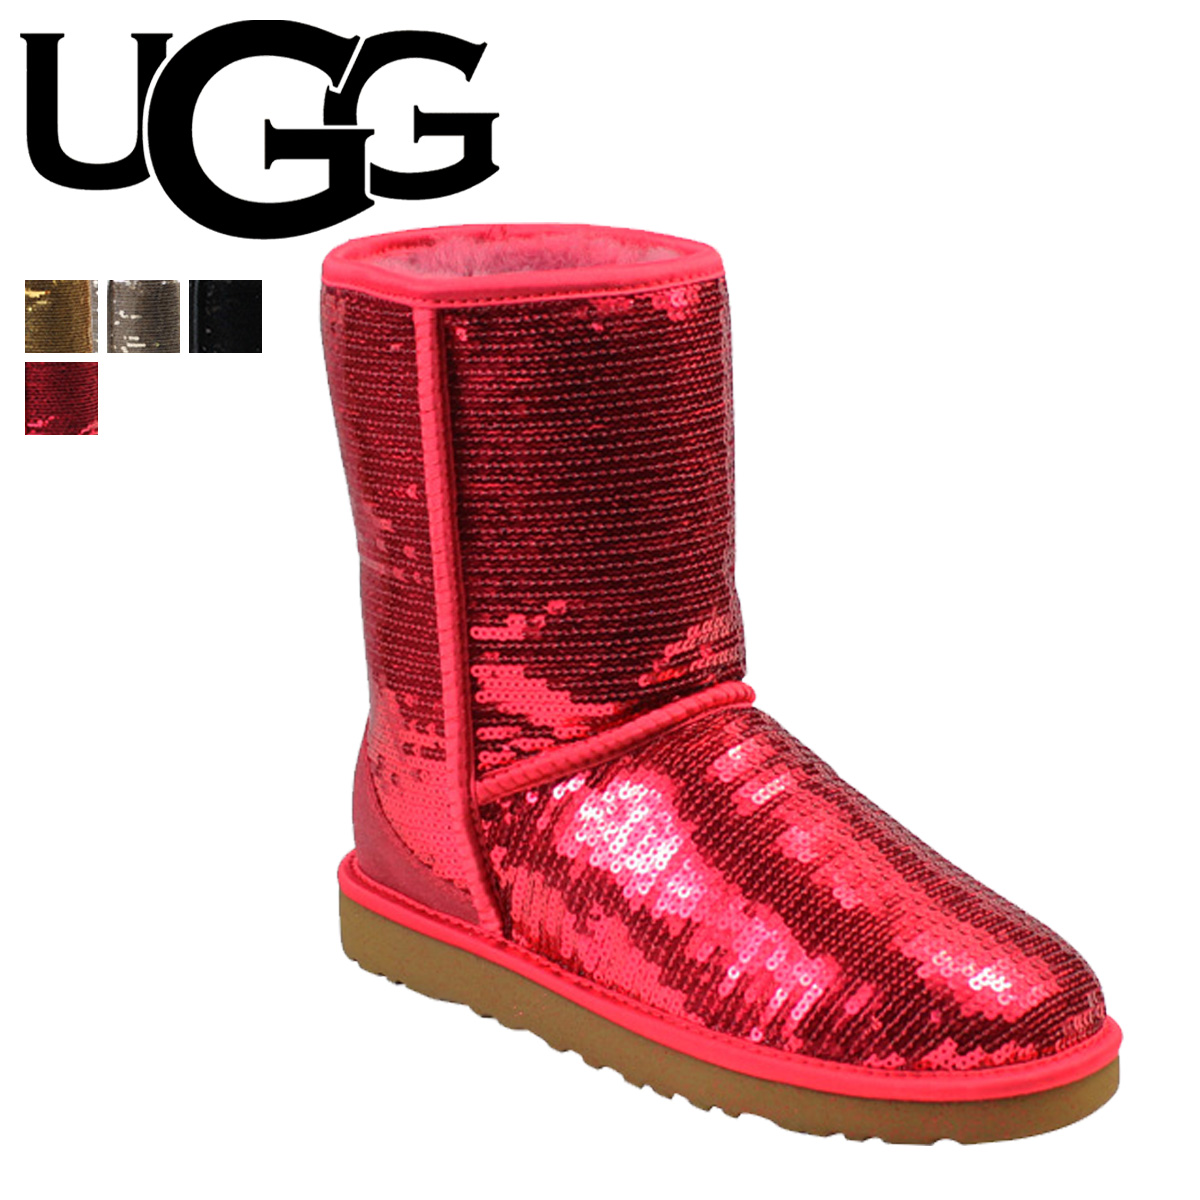 cedc3266e38 UGG Ugg Classic short Shearling boots WOMENS CLASSIC SHORT SPARKLES 3161  Sheepskin ladies